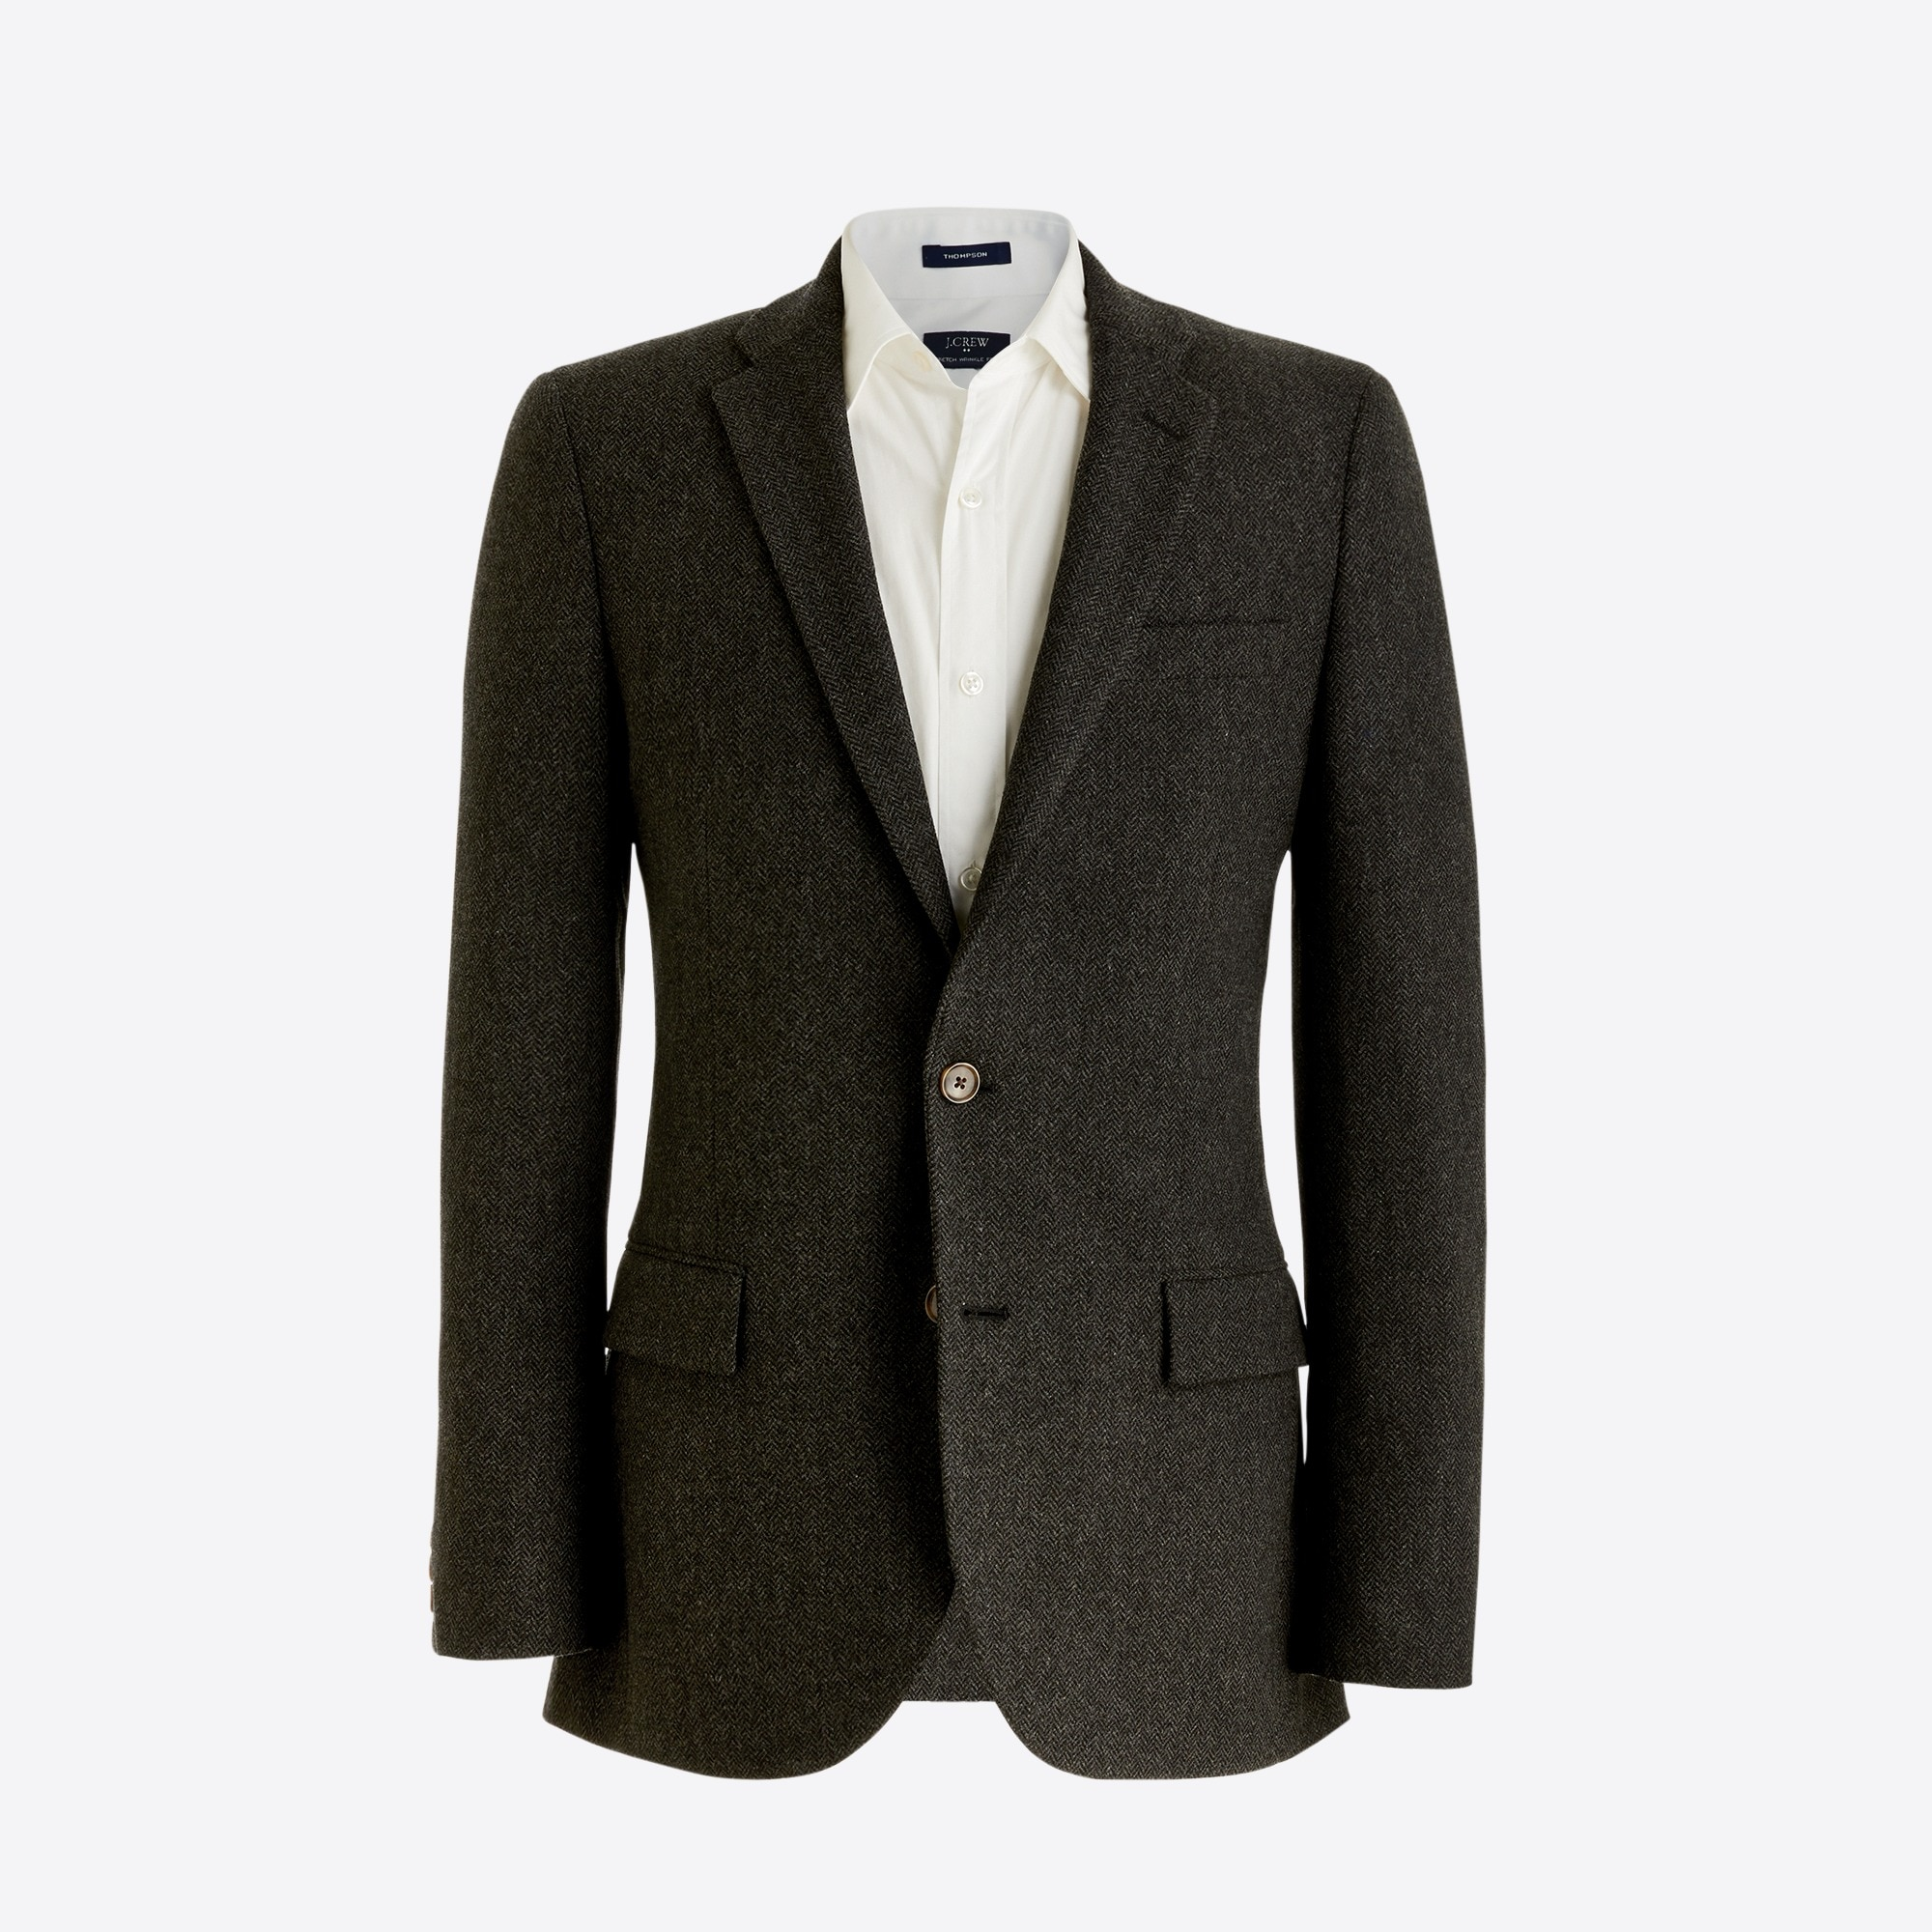 Image 1 for Thompson blazer in herringbone